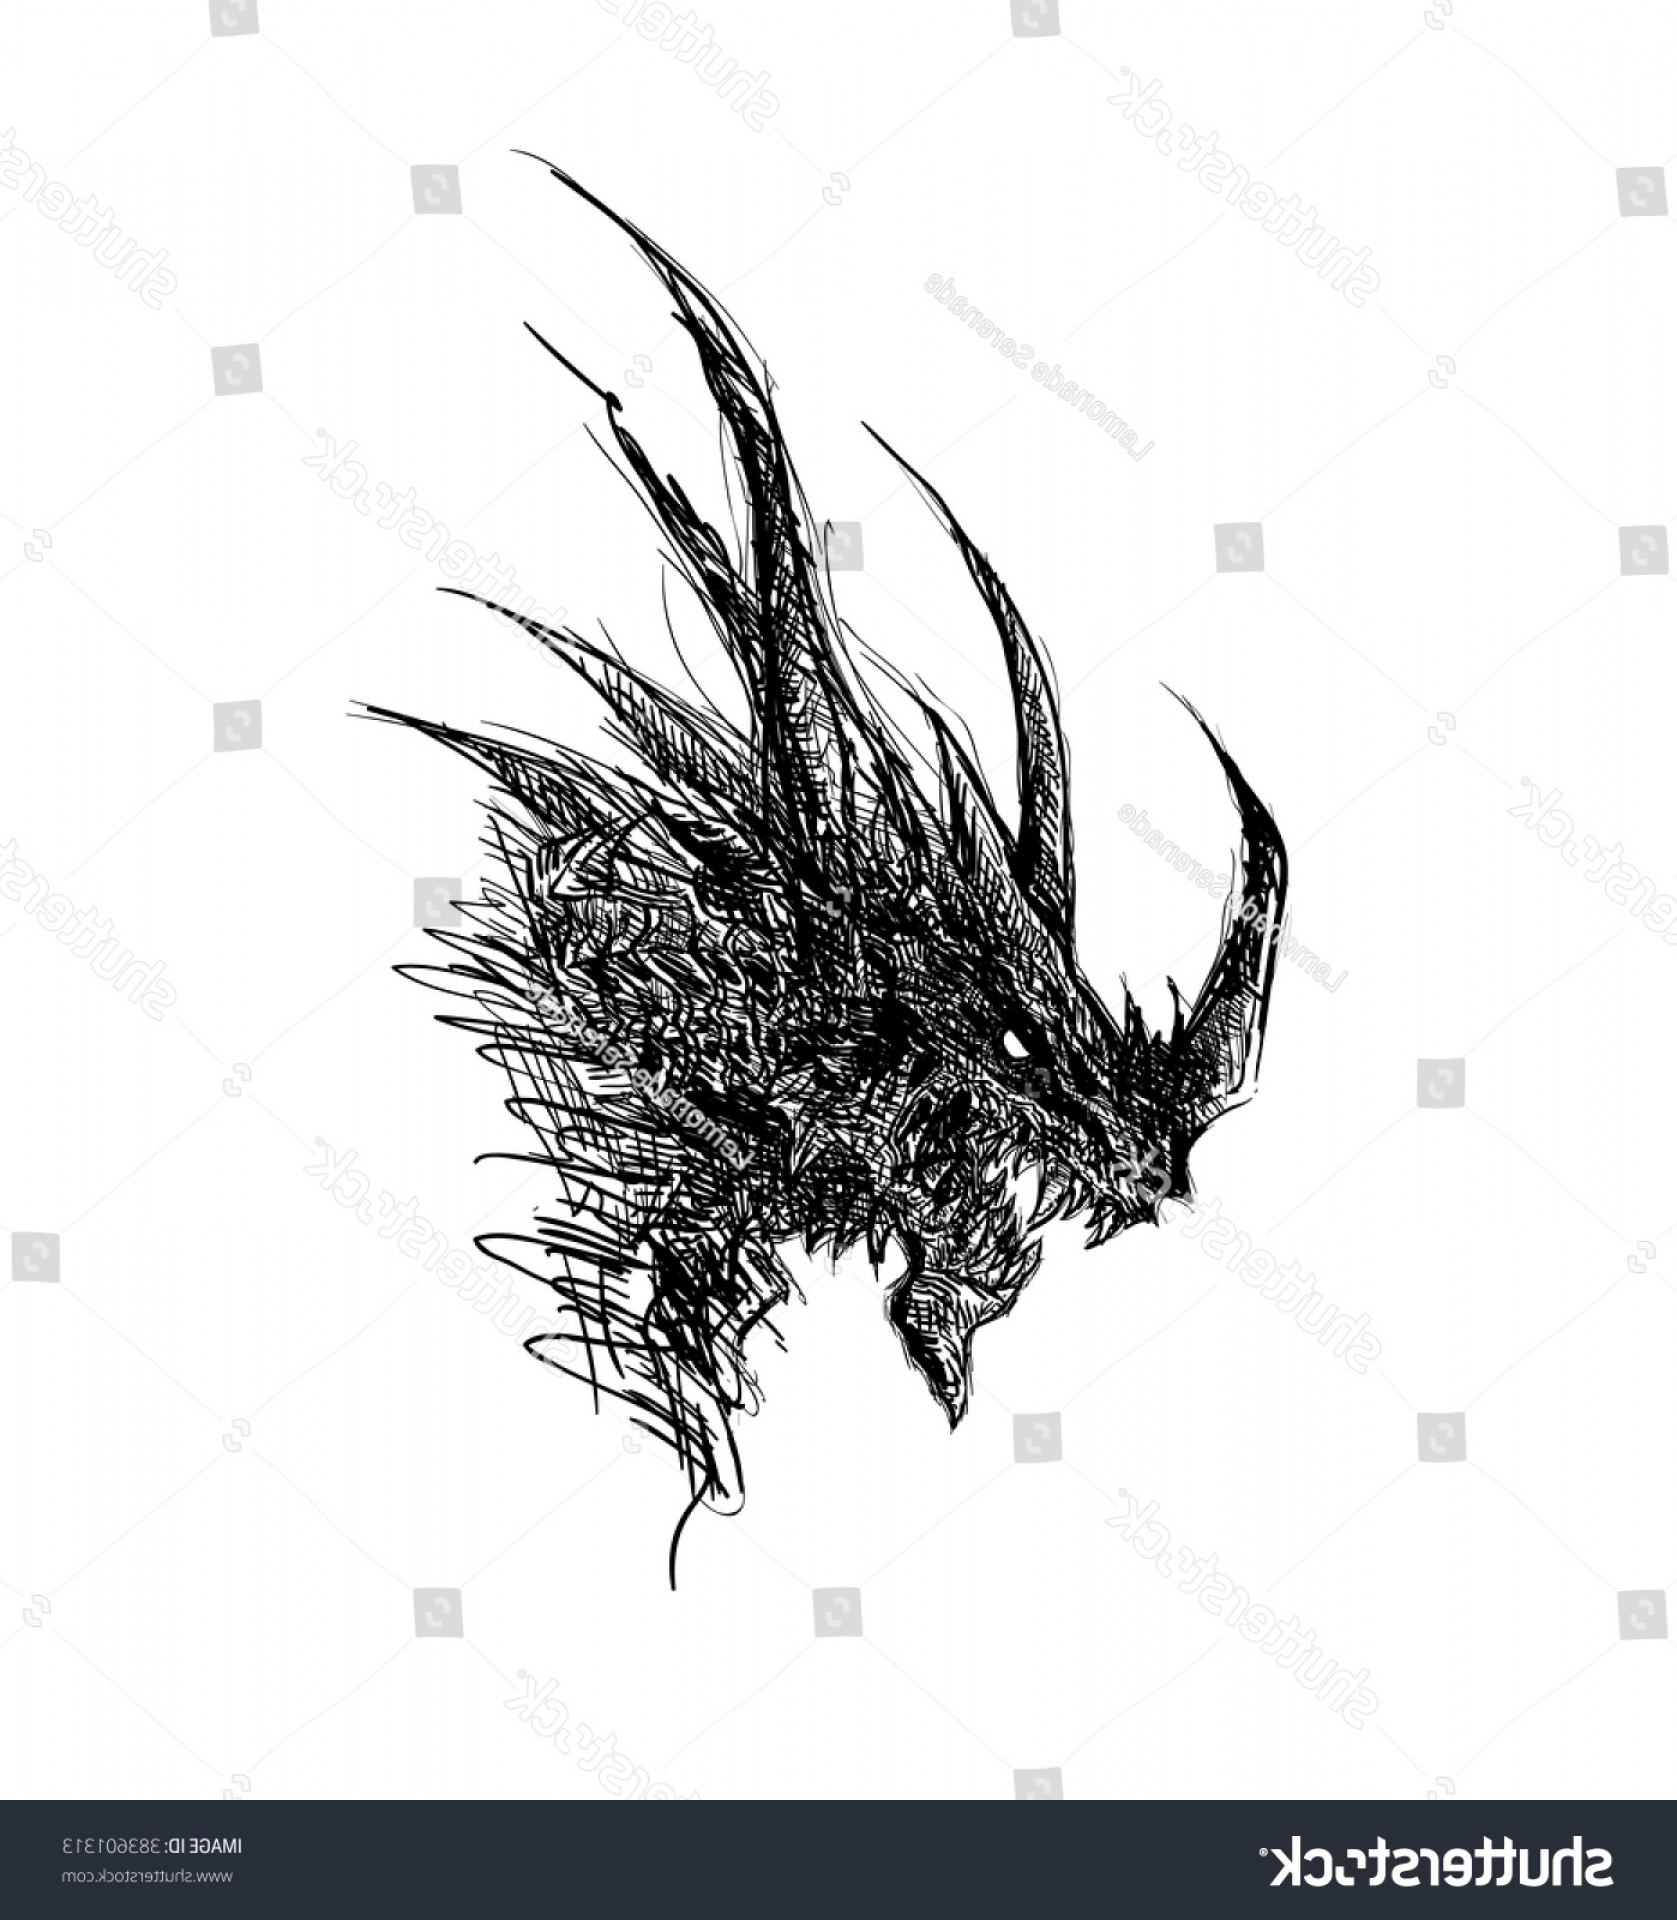 Cool Evil Vectors: Evil Looking Dragon Head Sketch Hand